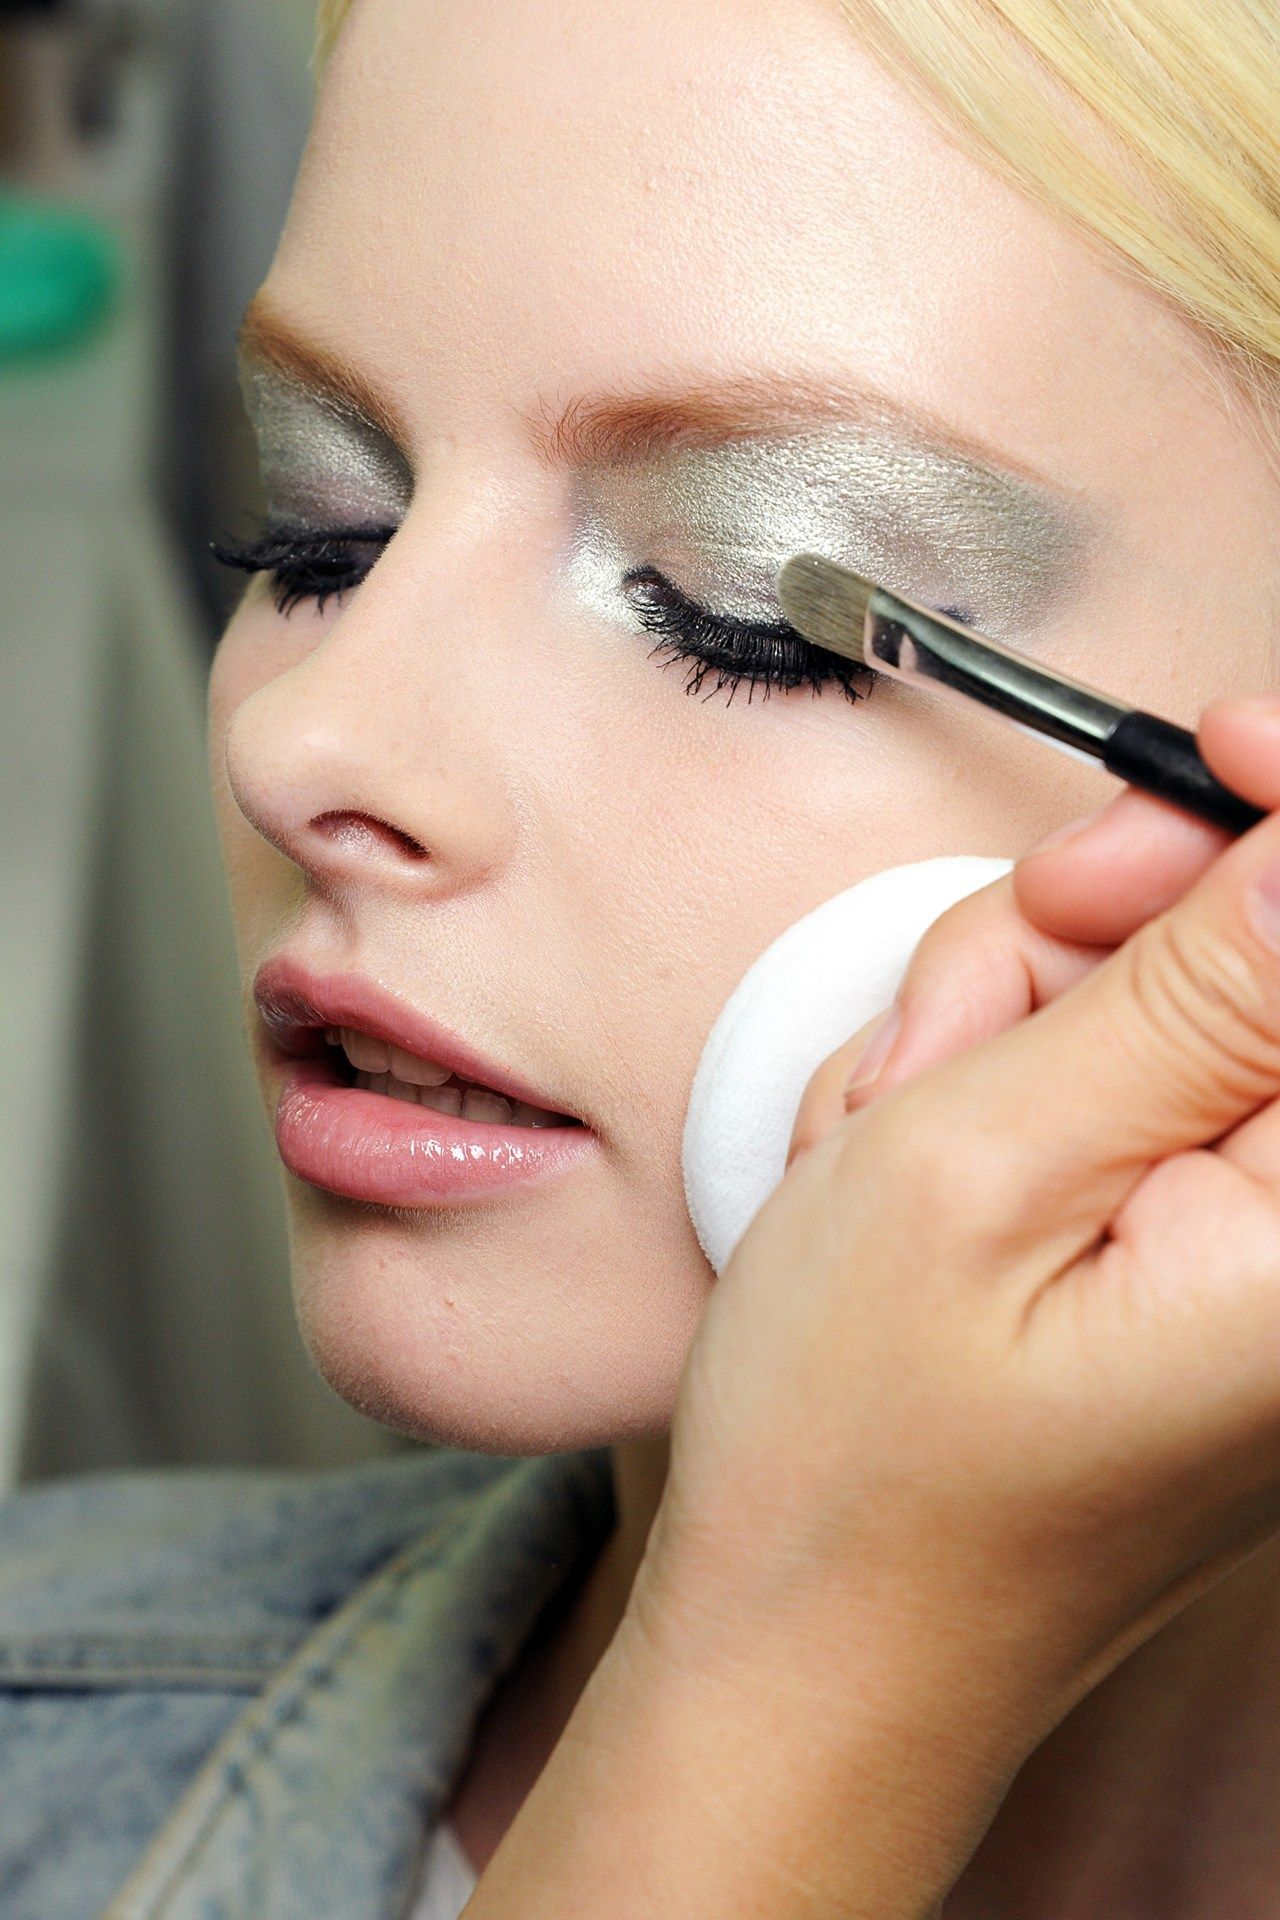 """Chanel Silver Make Up Backstage    I do love seeing close up beauty images backstage at the fashion shows, I saw this and had to share it.     Voque Quoted """"CHANEL - The eyes were the focus, with silvery shadow and feline liquid liner."""""""